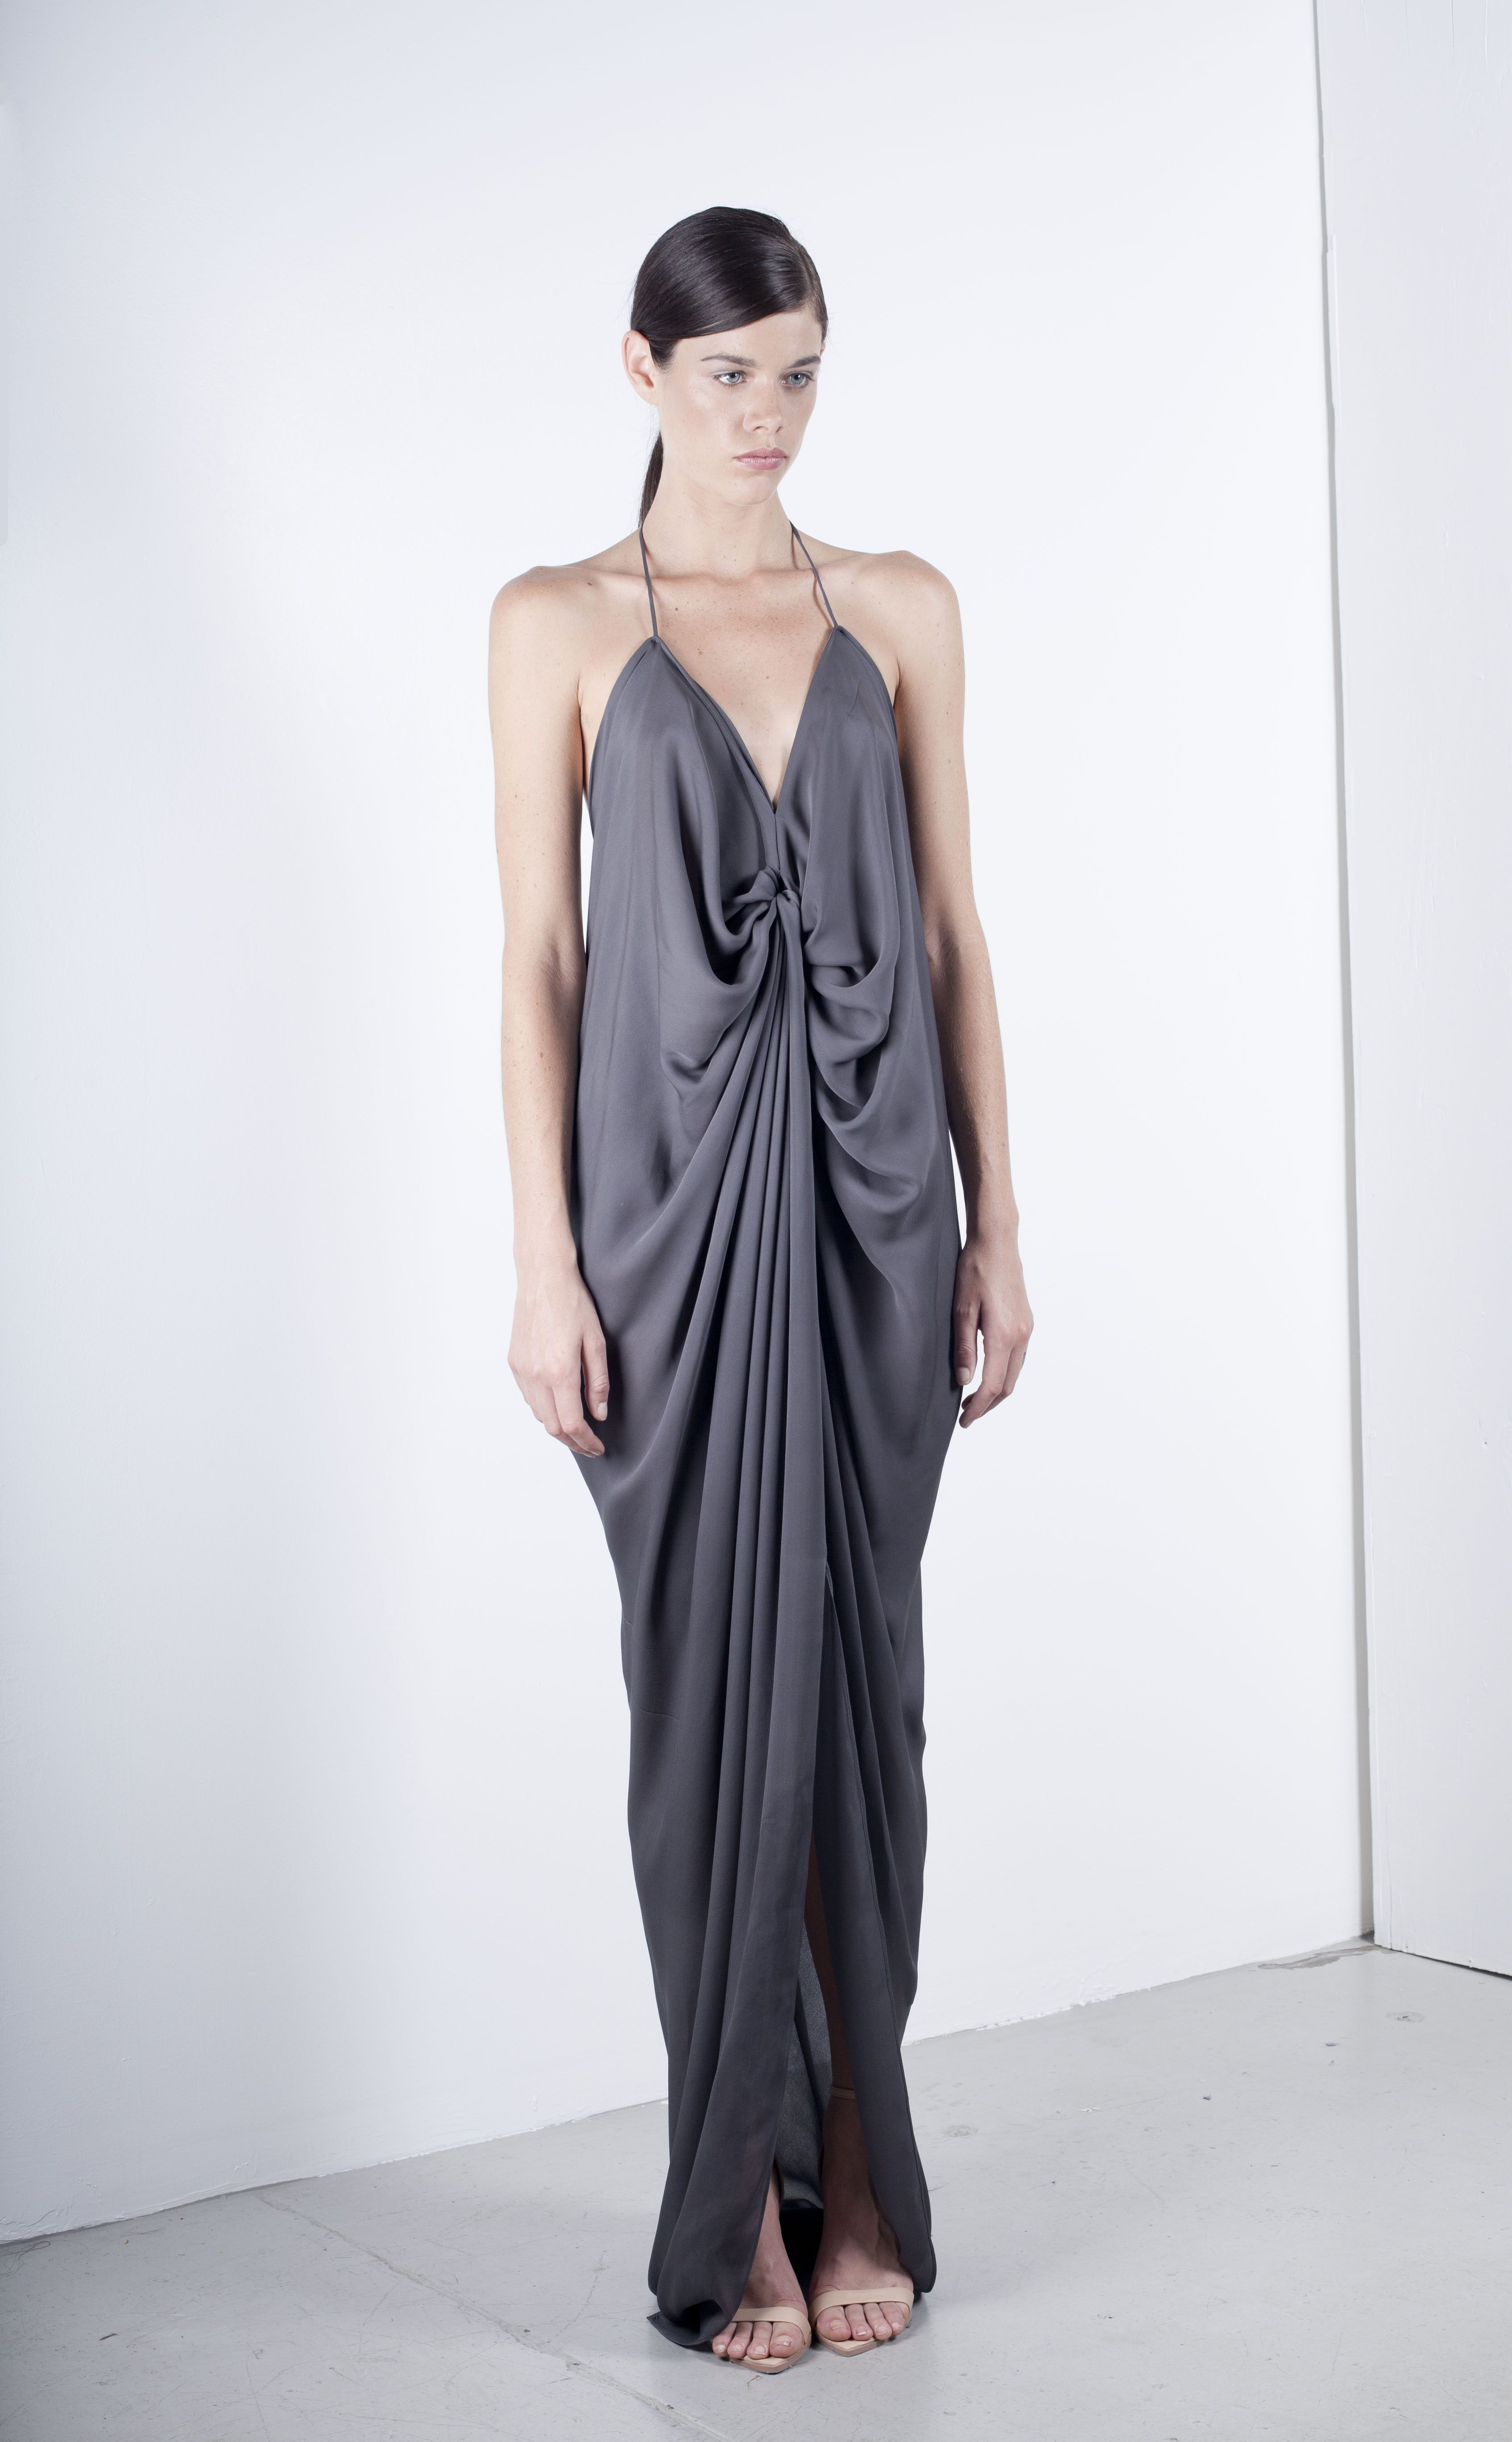 Elegant evening gown. Single knot valr dress- by Valdis NYC | Let ...